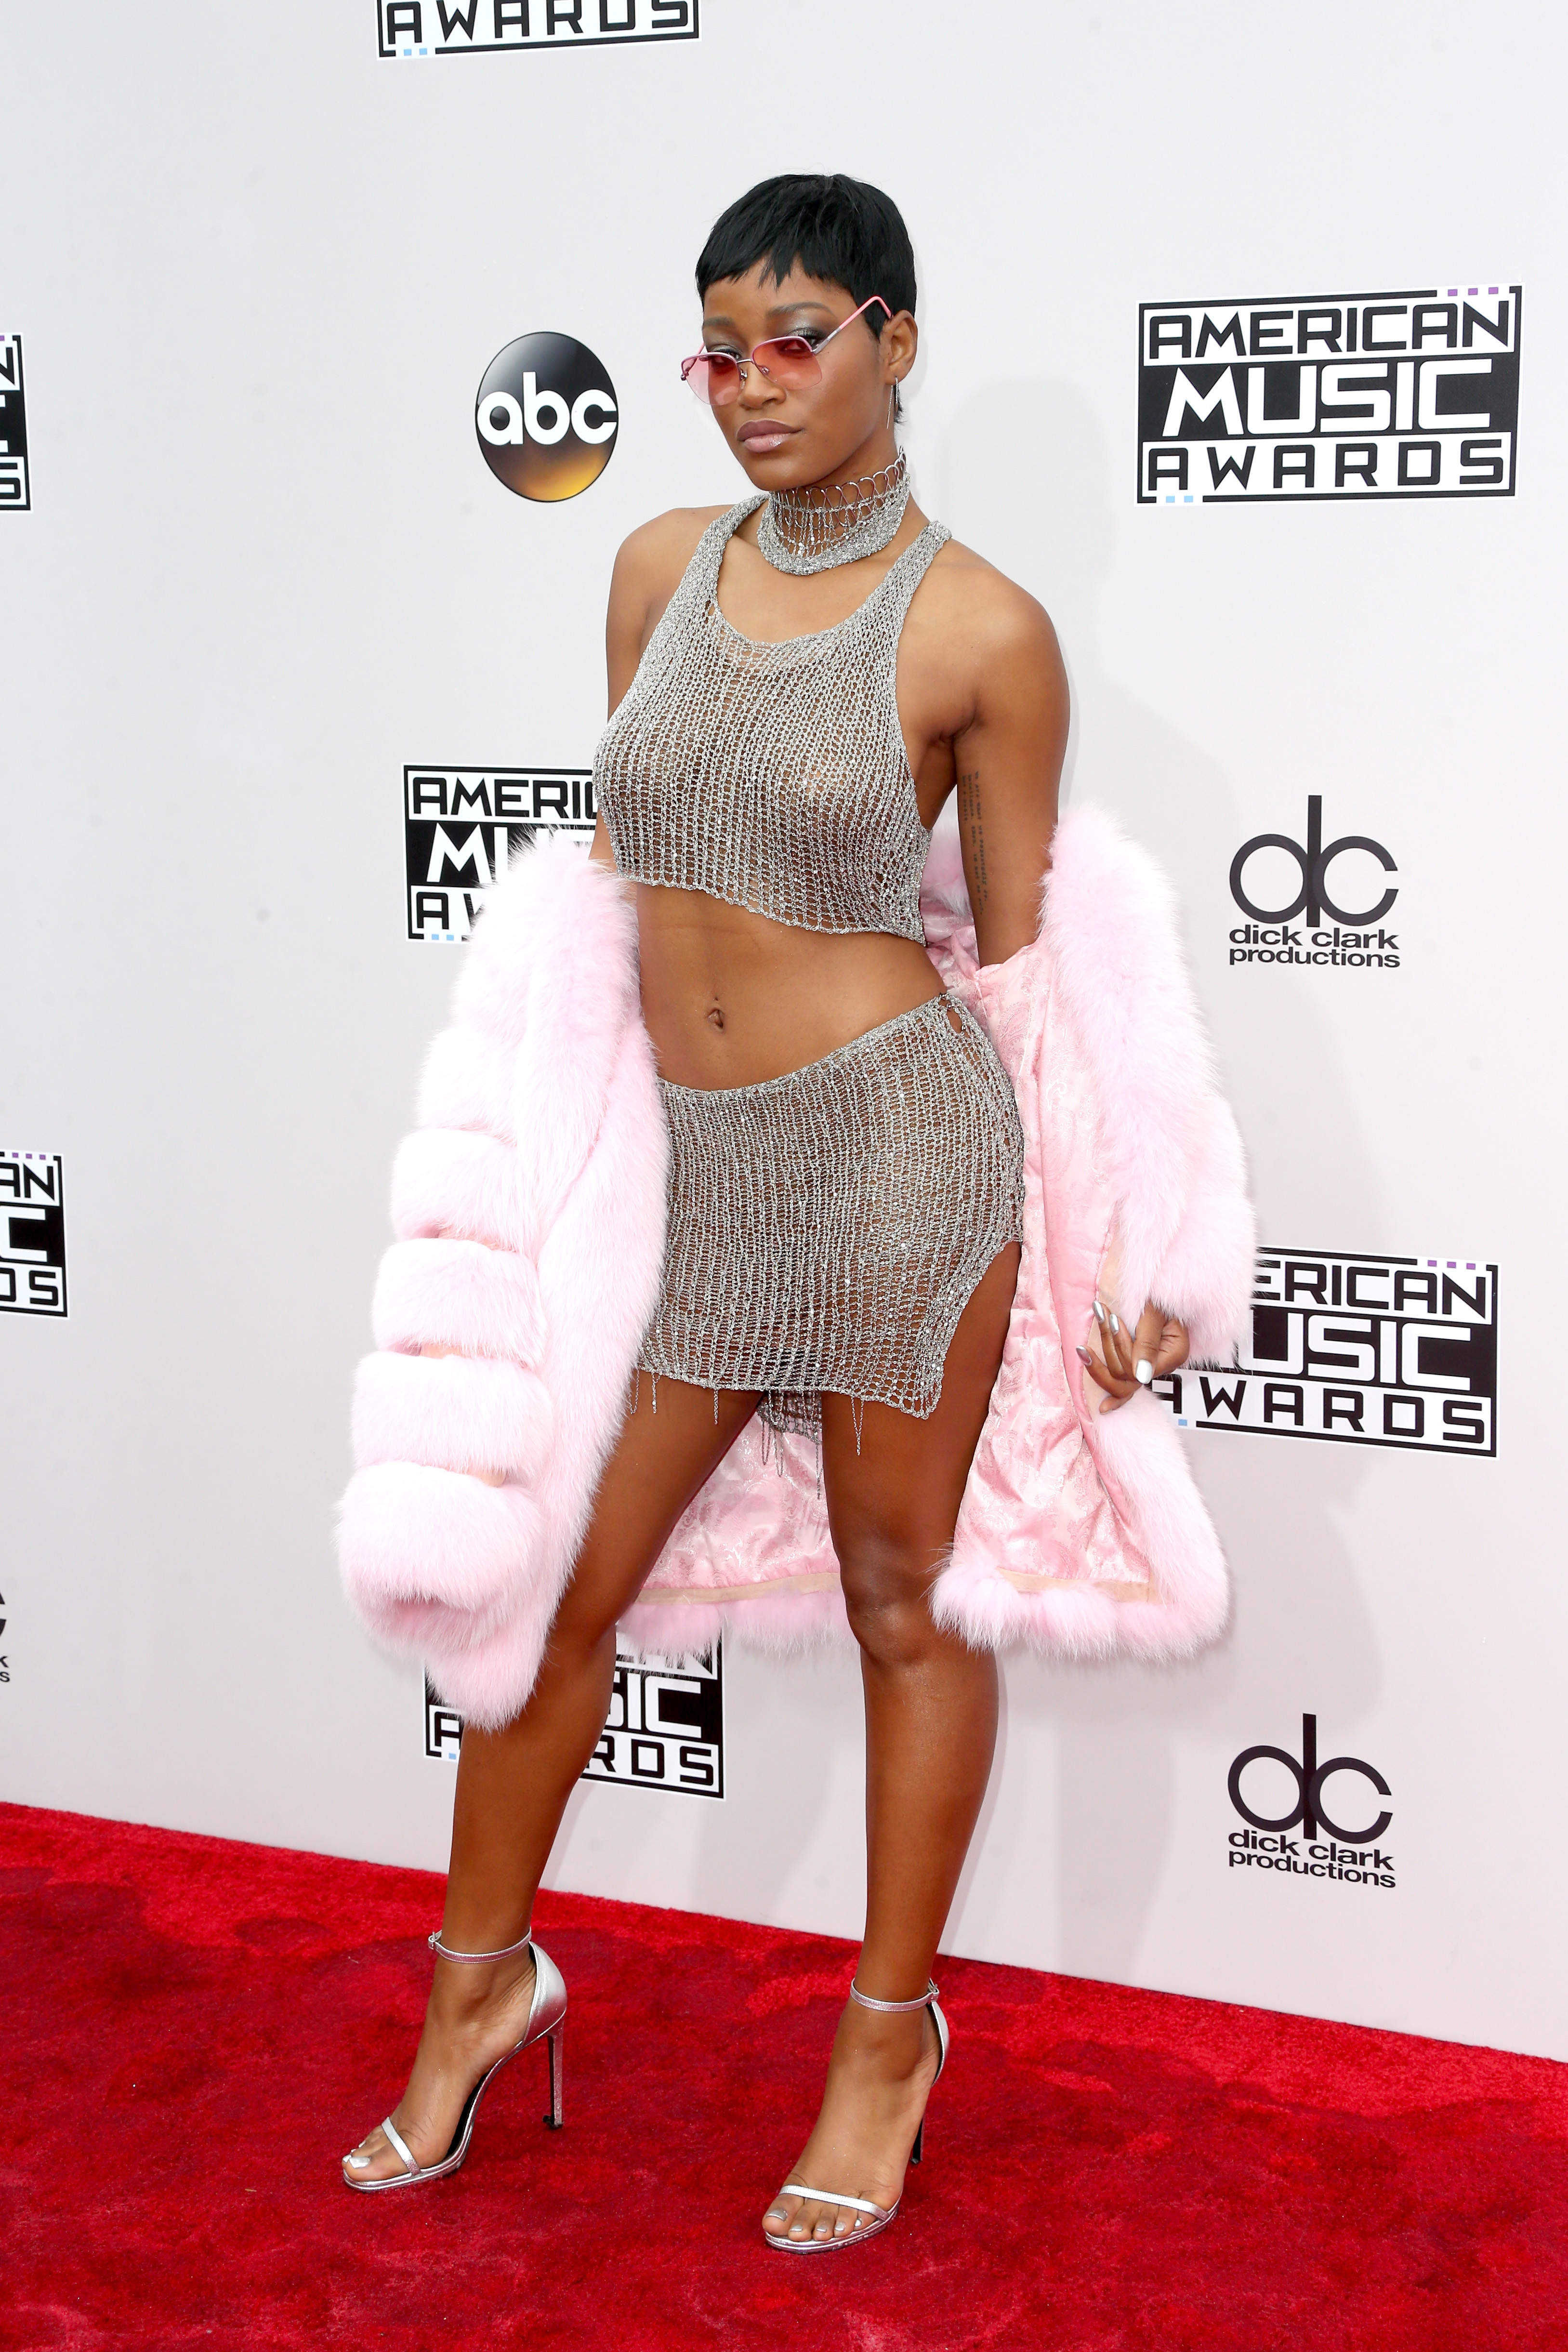 LOS ANGELES, CA - NOVEMBER 20: Actress Keke Palmer attends the 2016 American Music Awards at Microsoft Theater on November 20, 2016 in Los Angeles, California. (Photo by Frederick M. Brown/Getty Images)